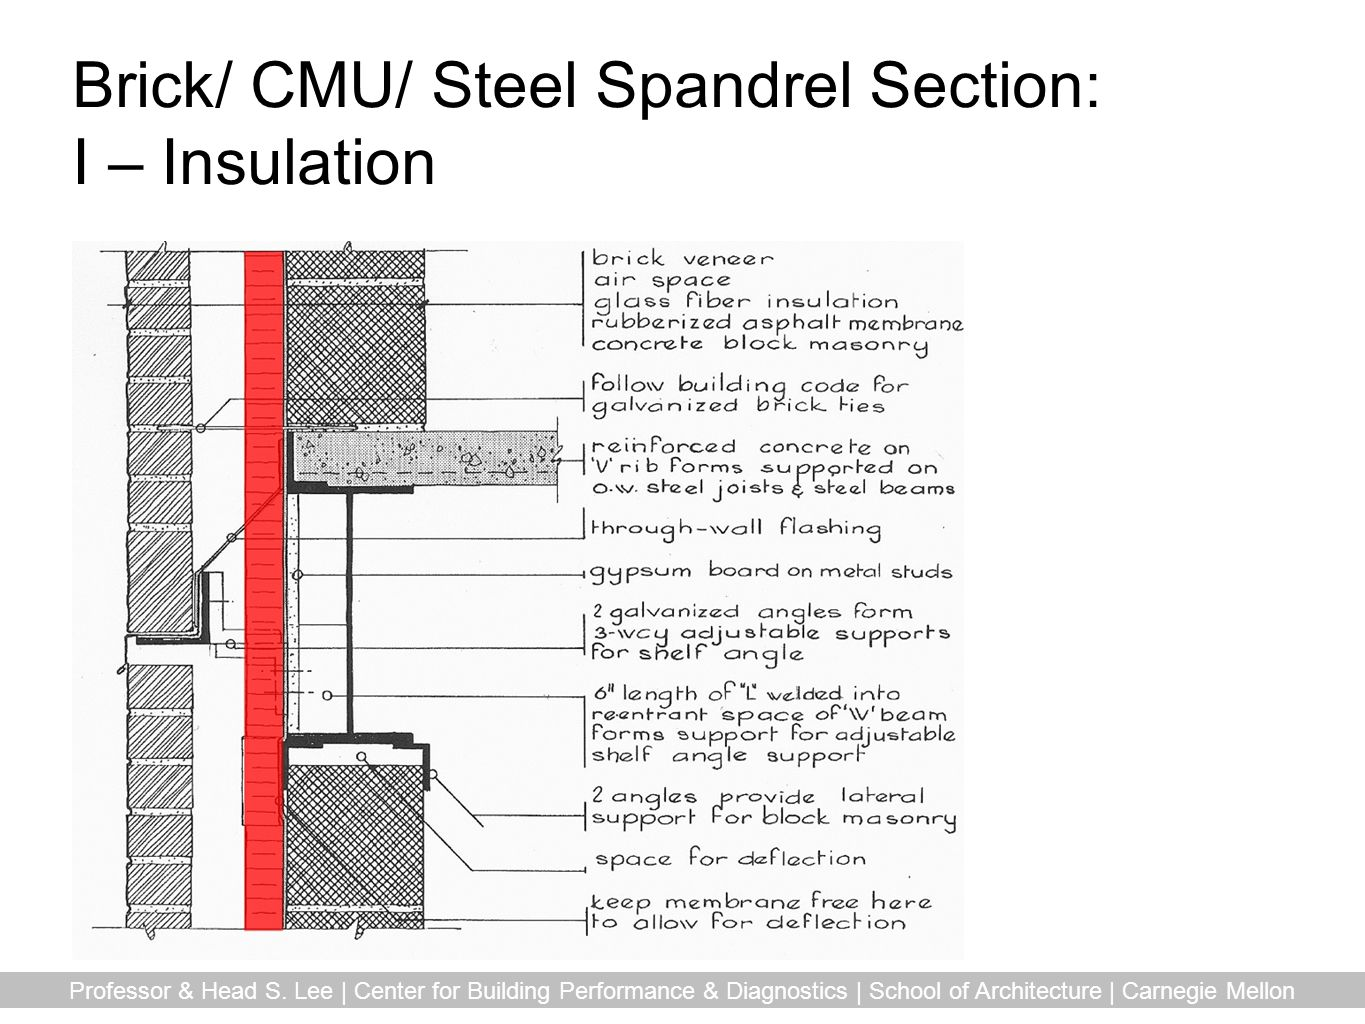 Brick/ CMU/ Steel Spandrel Section: I – Insulation